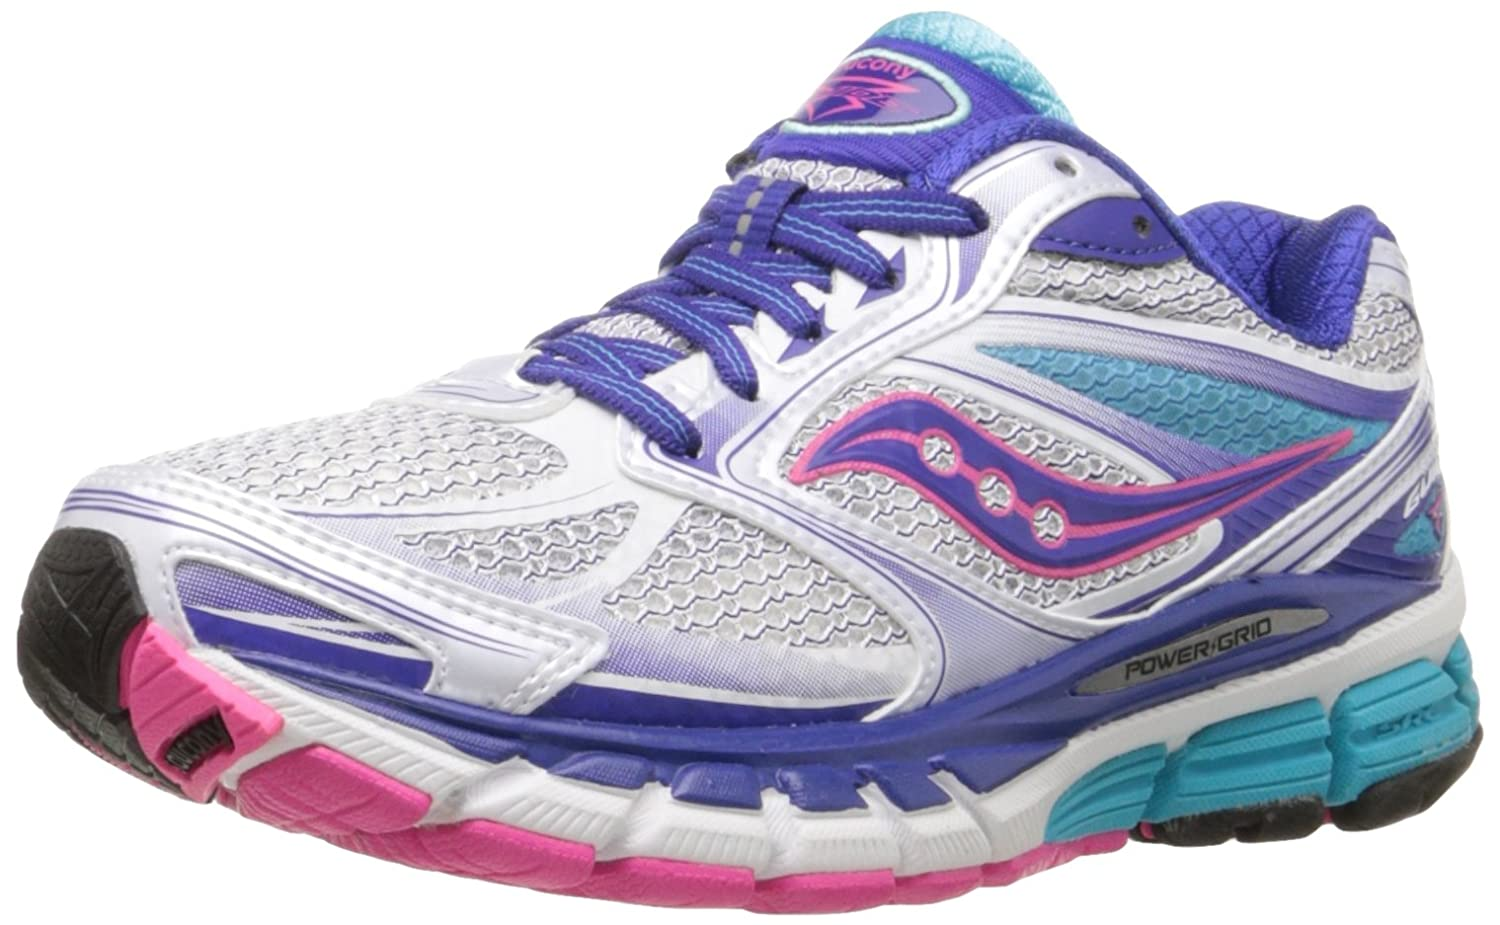 72972a9966bec1 Amazon.com | Saucony Women's Guide 8 Running Shoe | Running